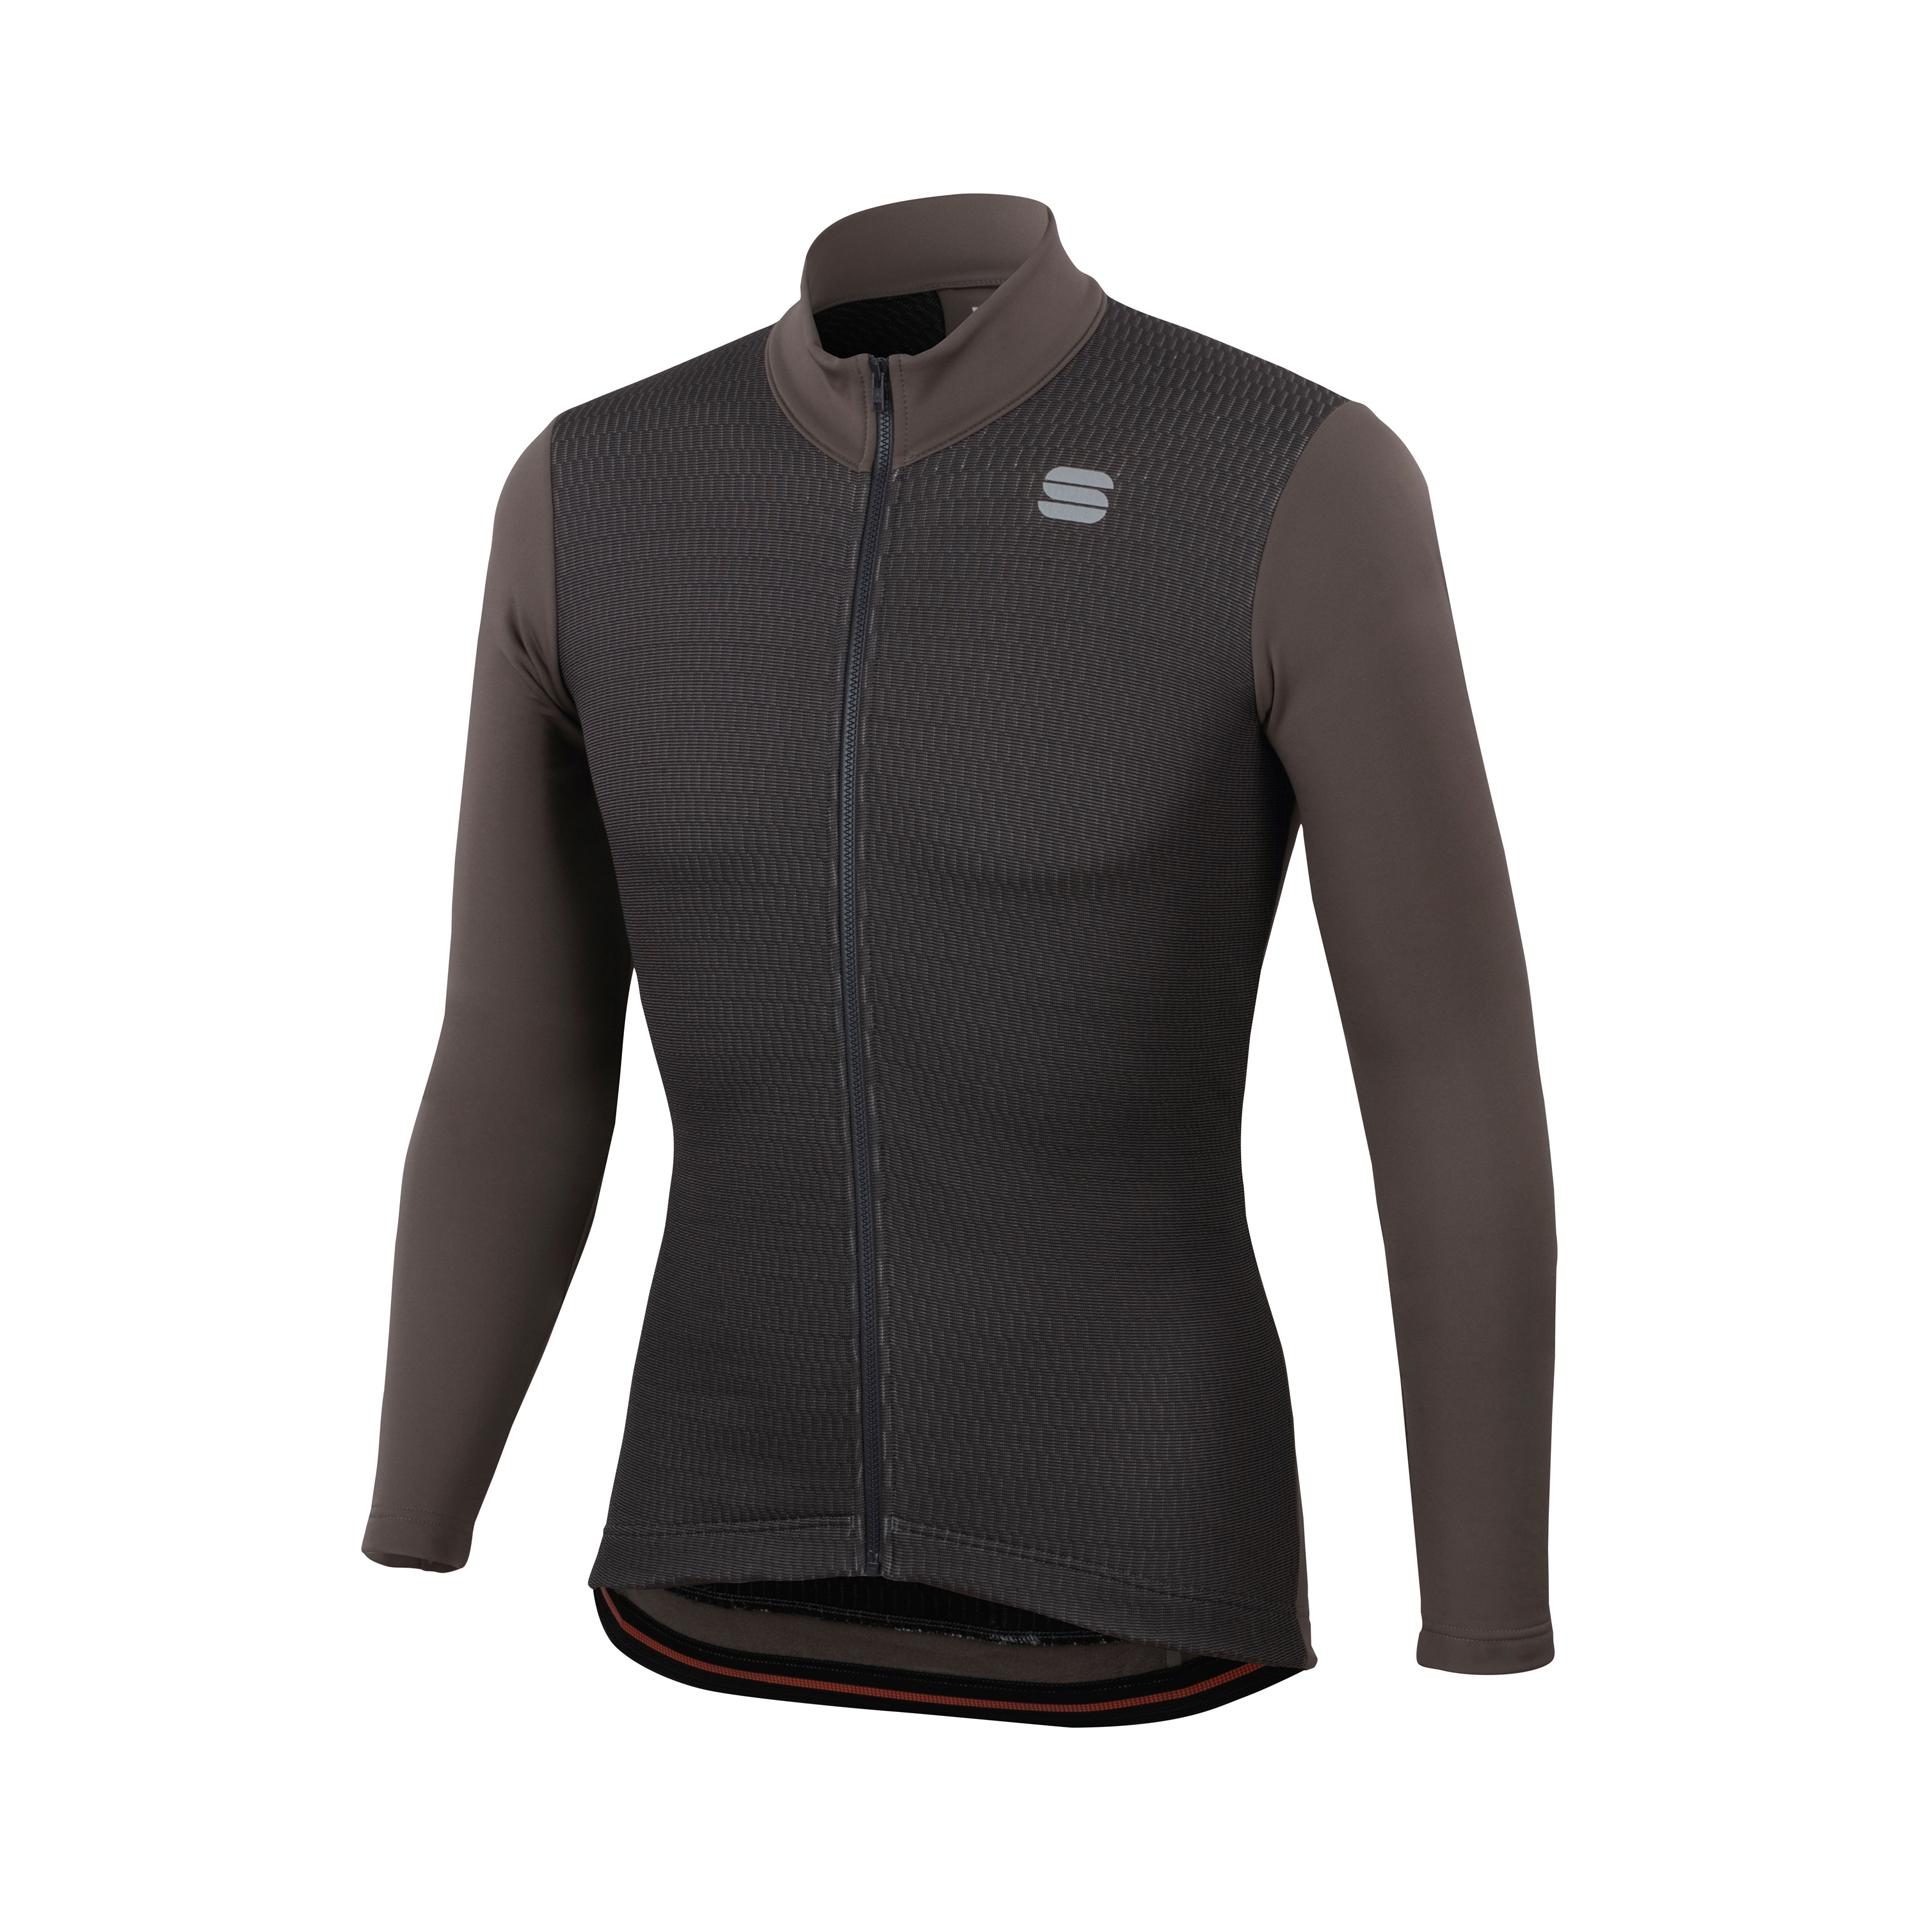 Sportful Fietsjack Heren Bruin / SF Lord Thermo Jacket-Titanium/Brown